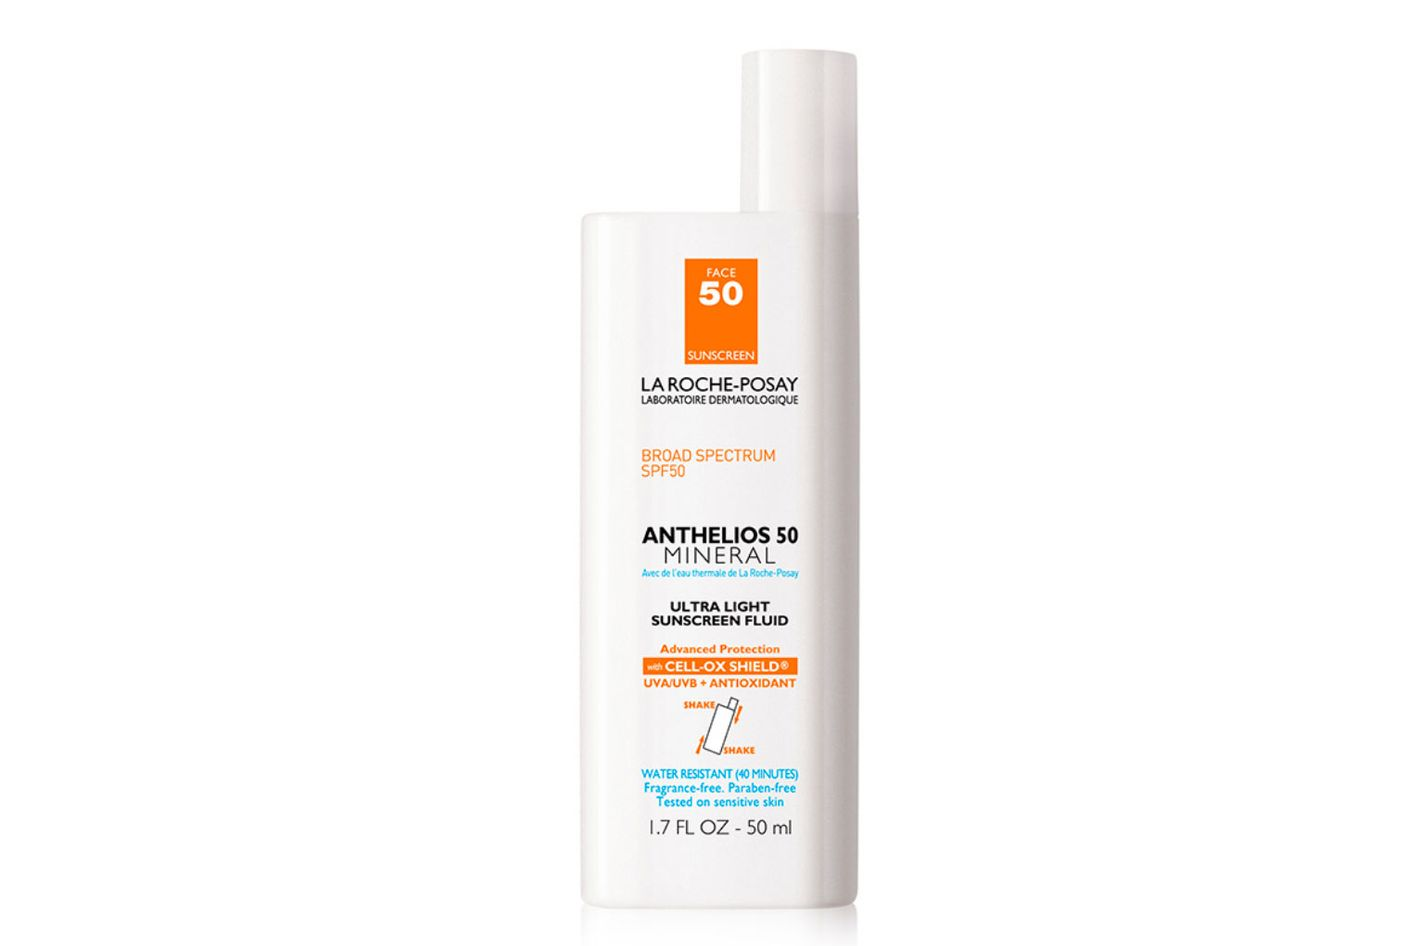 La Roche-Posay Anthelios 50 Mineral Ultra Light Sunscreen Fluid